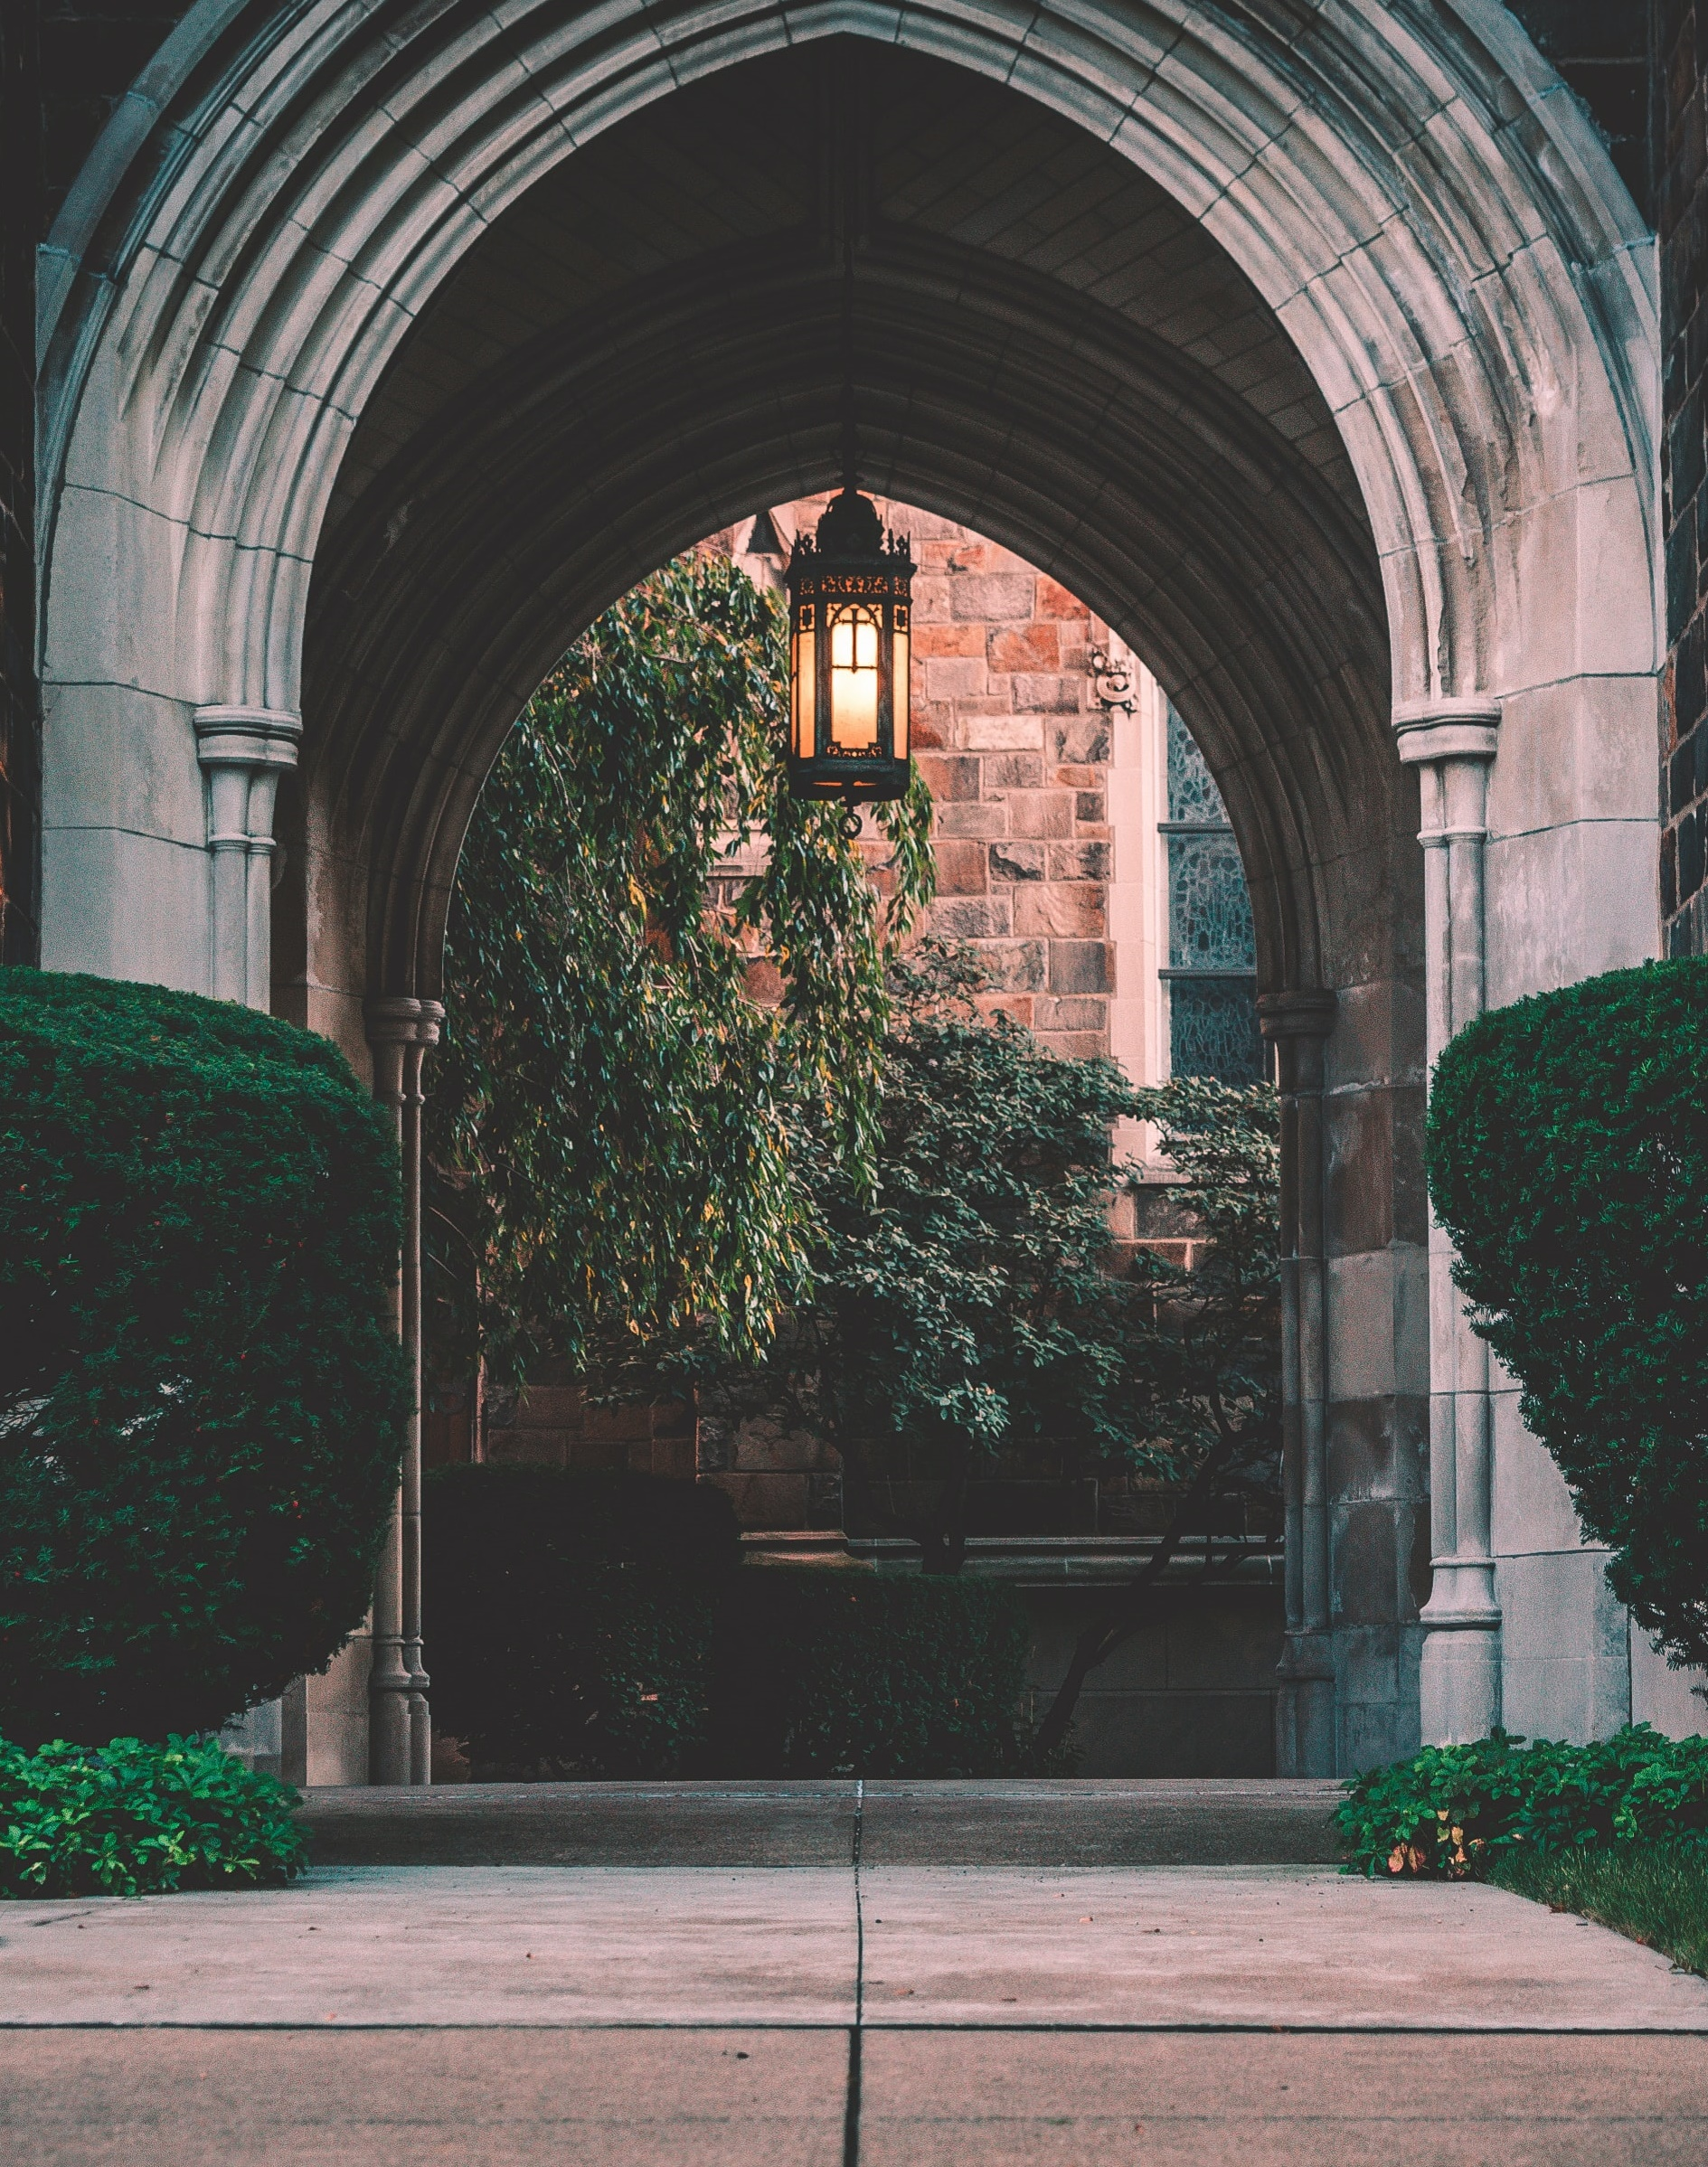 FINANCIAL PLANNING: COLLEGE PLANNING IN 2020